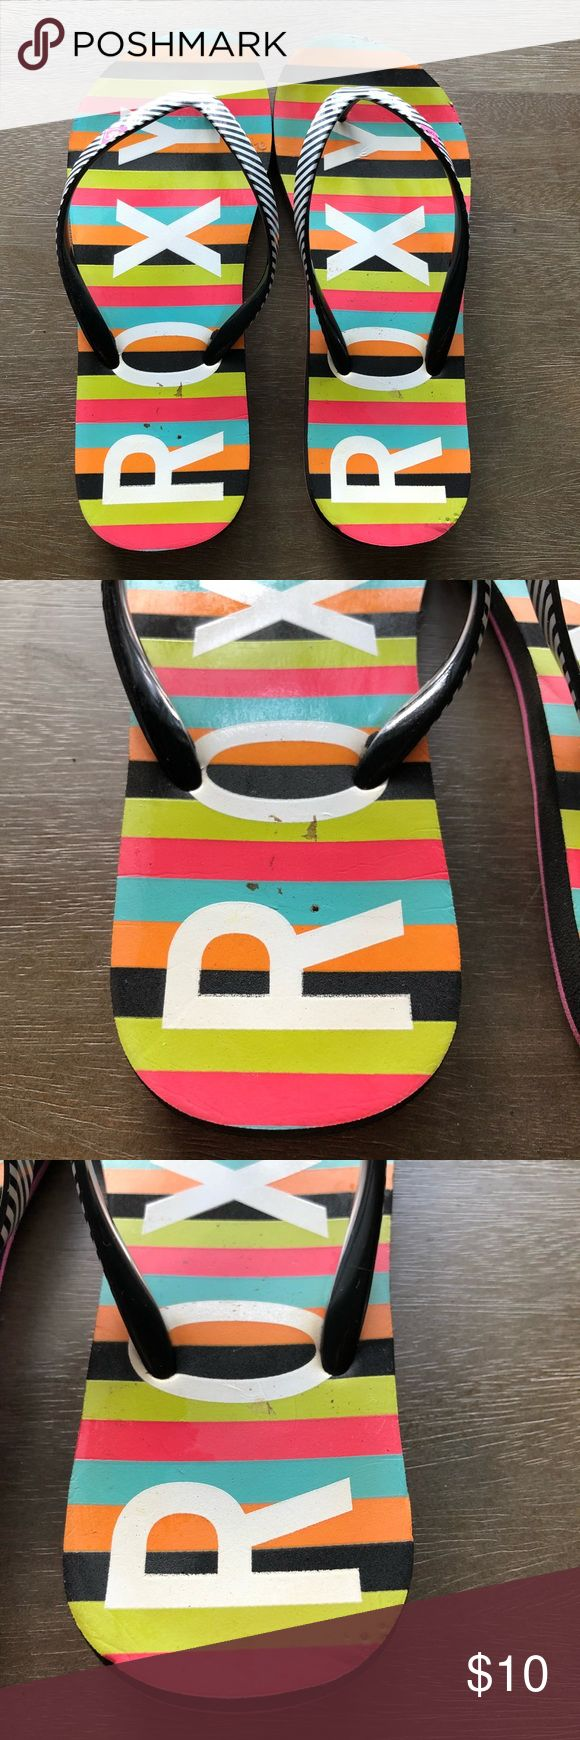 Roxy Rainbow Striped Flip Flop Sandal Great colorful striped Roxy Flip Flops, lots of life in them and no breakage or tears, these are a size 6-7 see tag picture Roxy Shoes Sandals